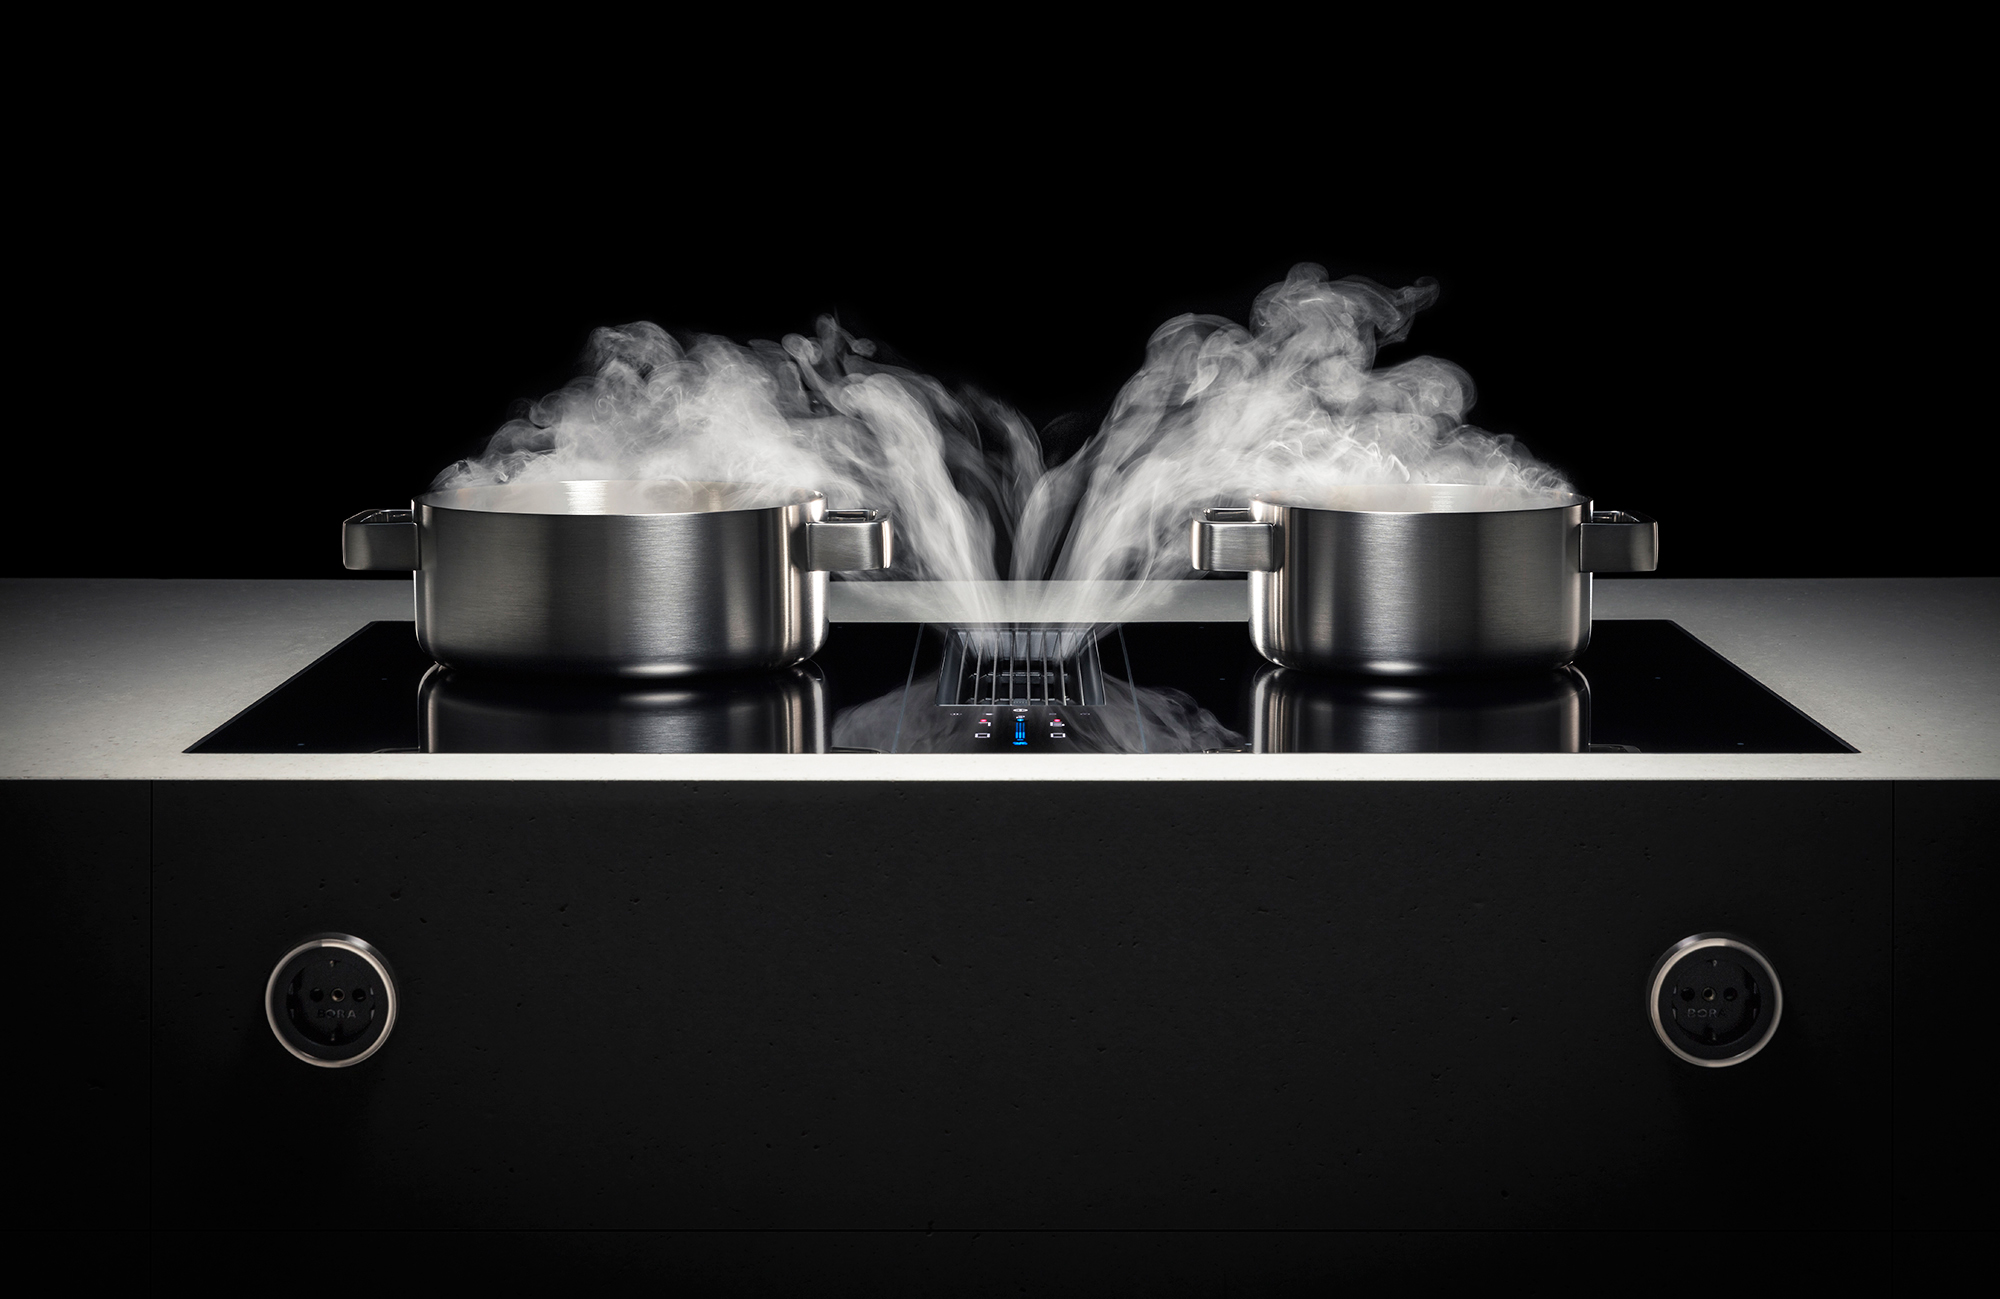 Bora Classic 2 0 Surface Induction Glass Ceramic Cooktop With 2 Cooking Zones By Bora Stylepark